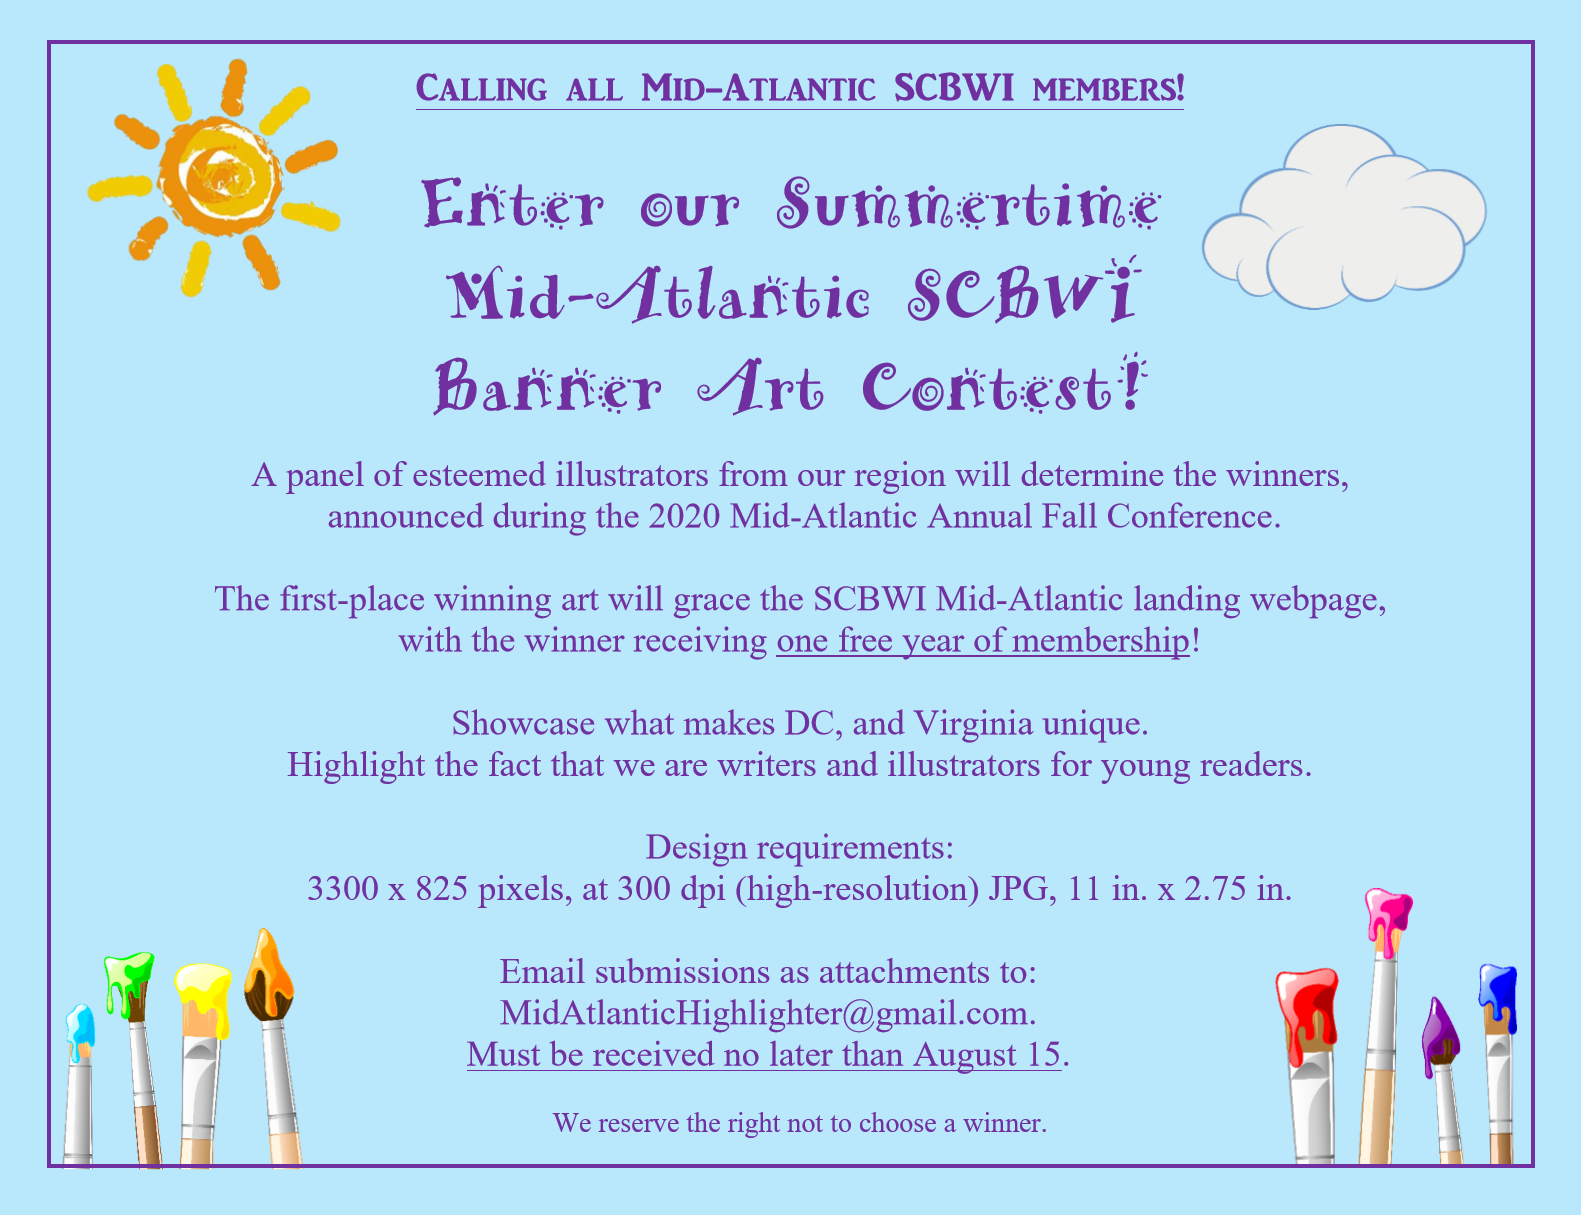 Enter our Summertime Mid Atlantic SCBWI Banner Art Contest! A panel of esteemed illustrators from our region will determine the winners, announced during the 2020 Mid Atlantic Annual Fall Conference. The first place winning art will grace the SCBWI Mid Atlantic landing webpage with the winner receiving one free year of membership! Design requirements: 3300x825 pixels, at 300 dpi (high-resolution) JPG, 11in by 2.75in. Email submissions as attachments to: midatlantichighlighter@gmail.com Must be received by August 15.